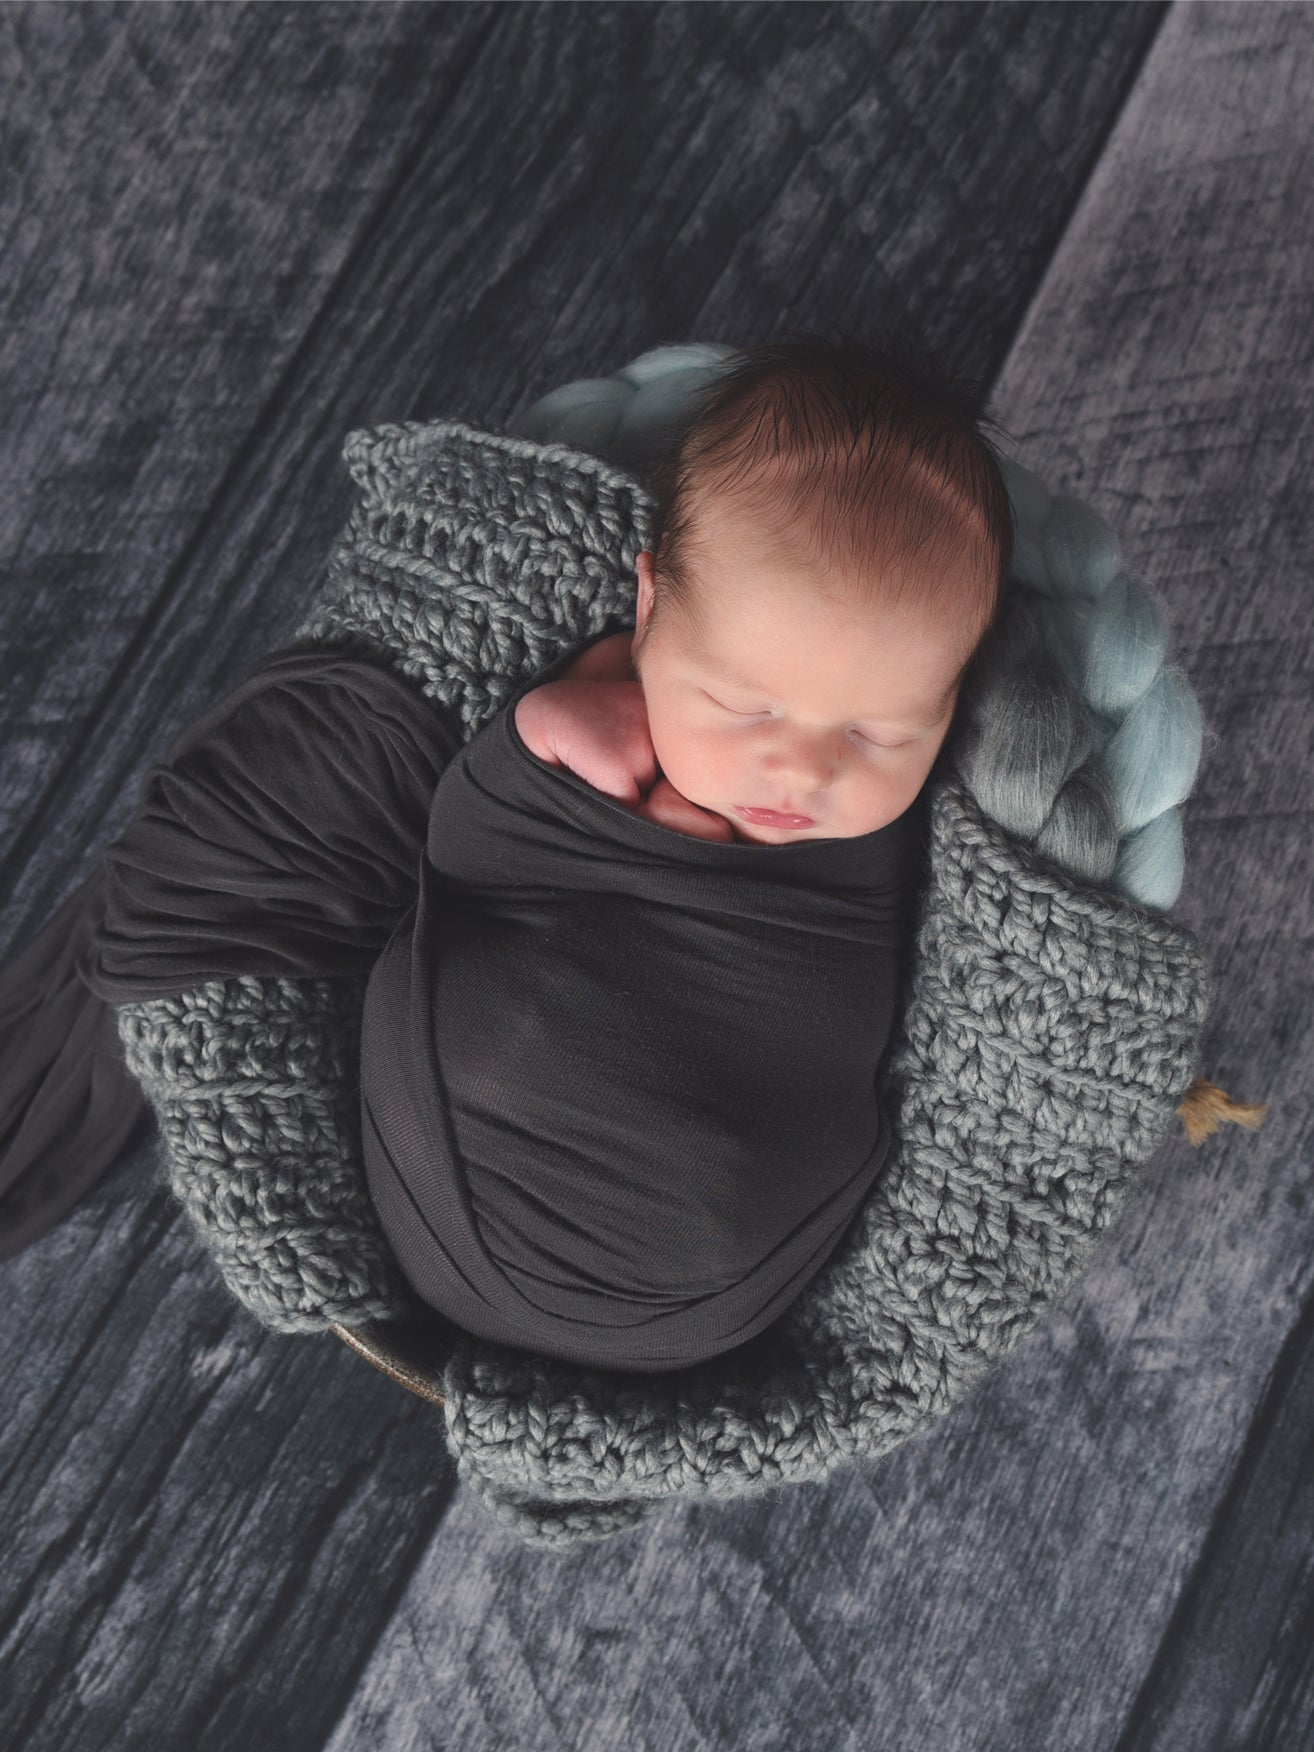 Slate Gray newborn baby layering bump blanket by Two Seaside Babes